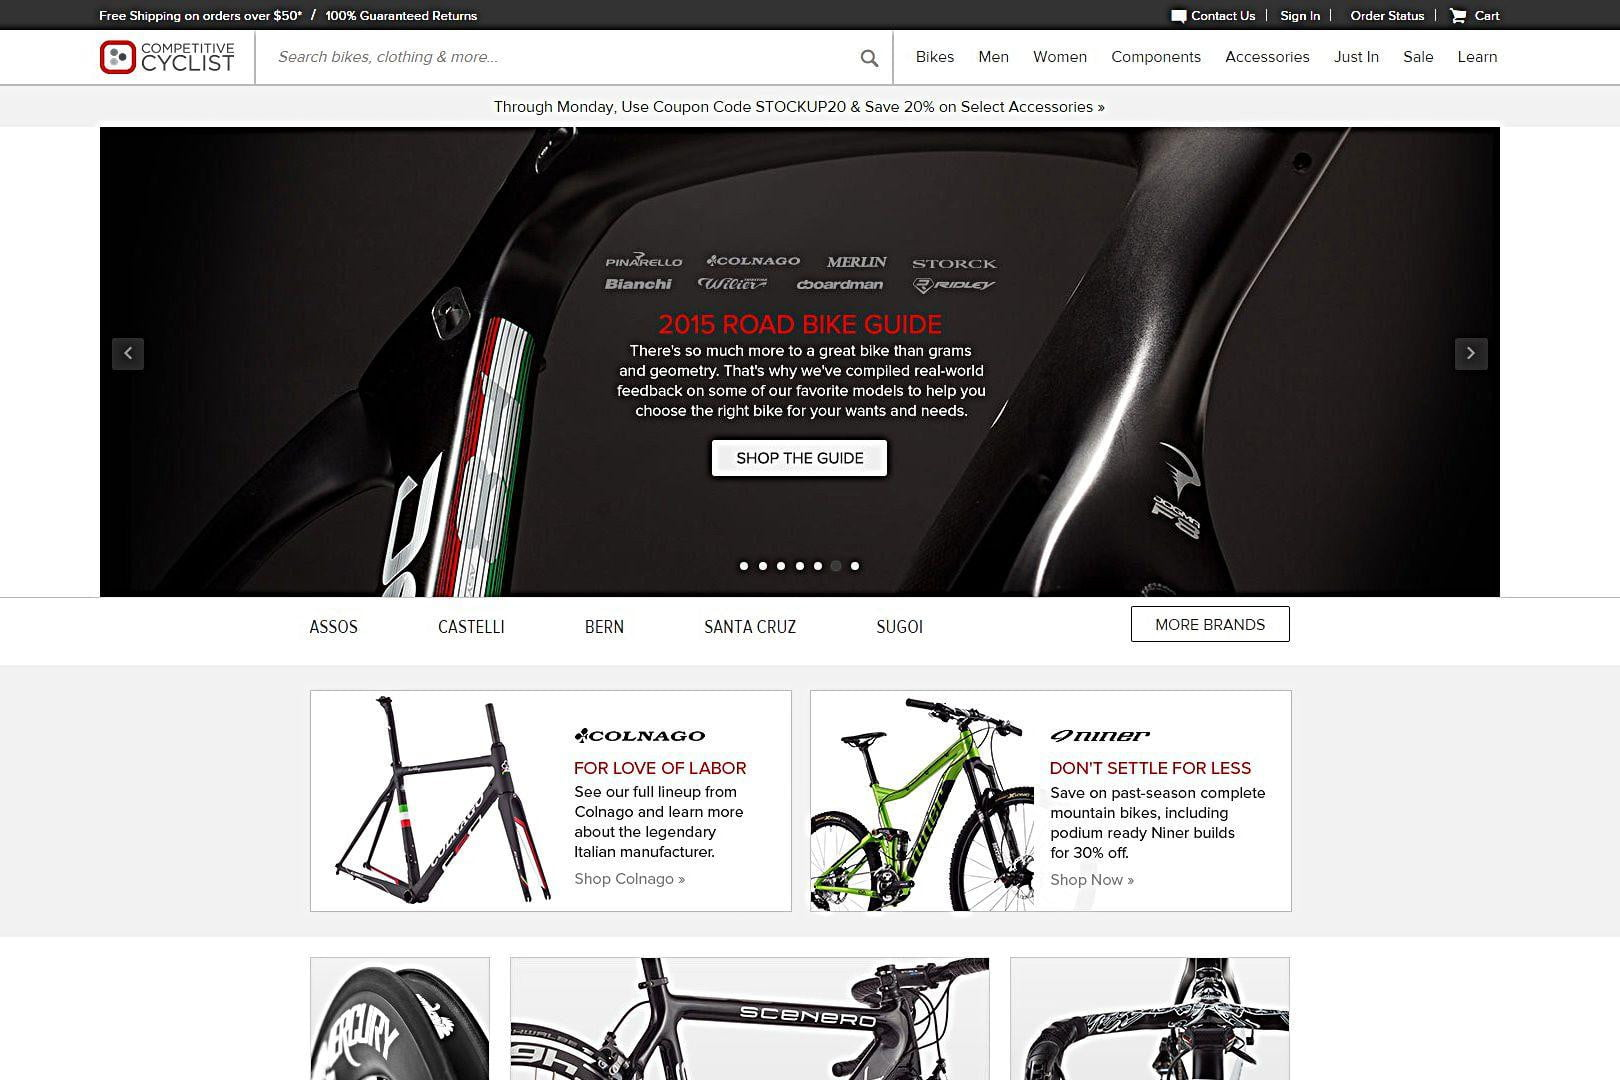 Competitive Cyclist buy bikes online